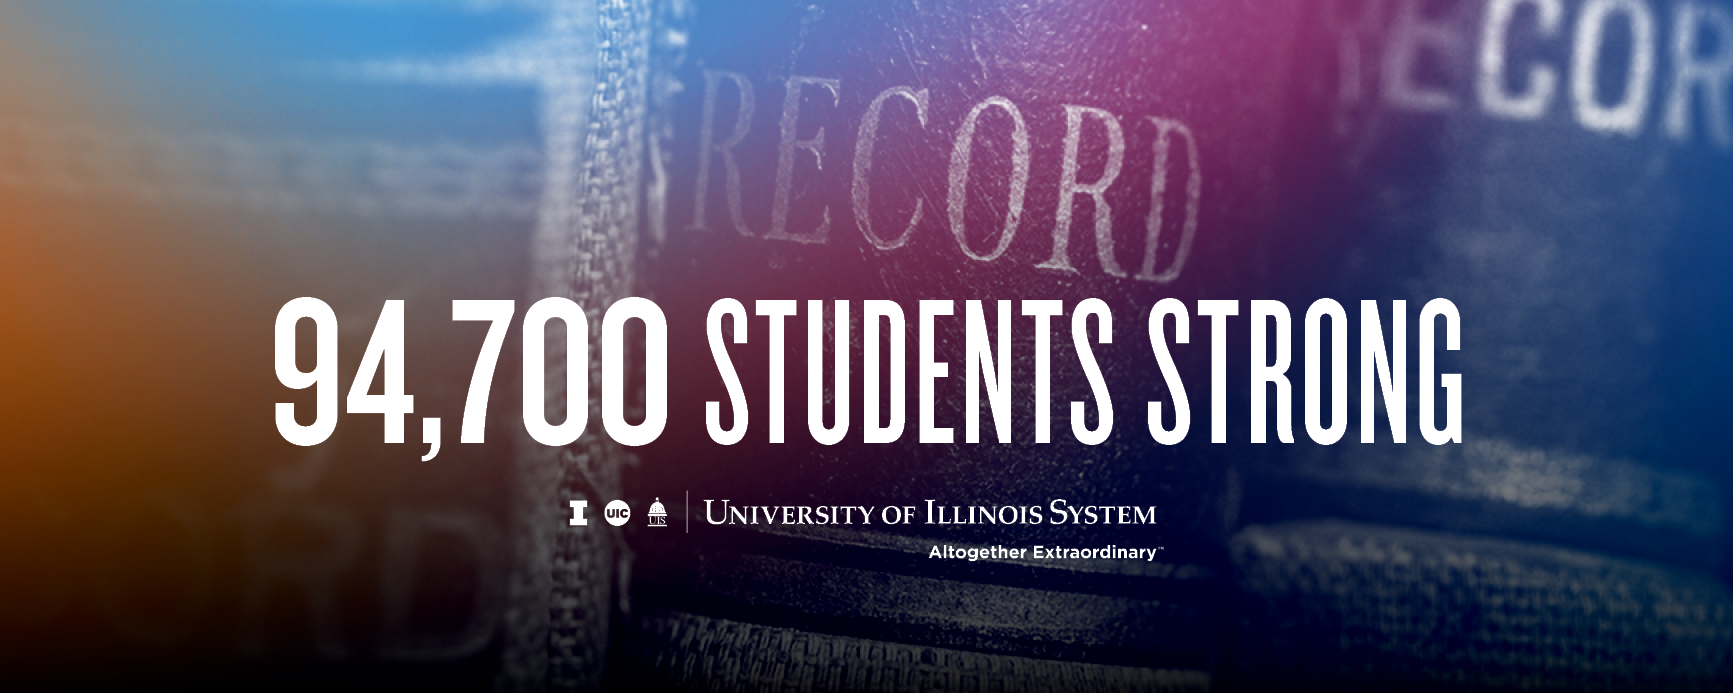 94,700 students strong, books in background, U of I System logo